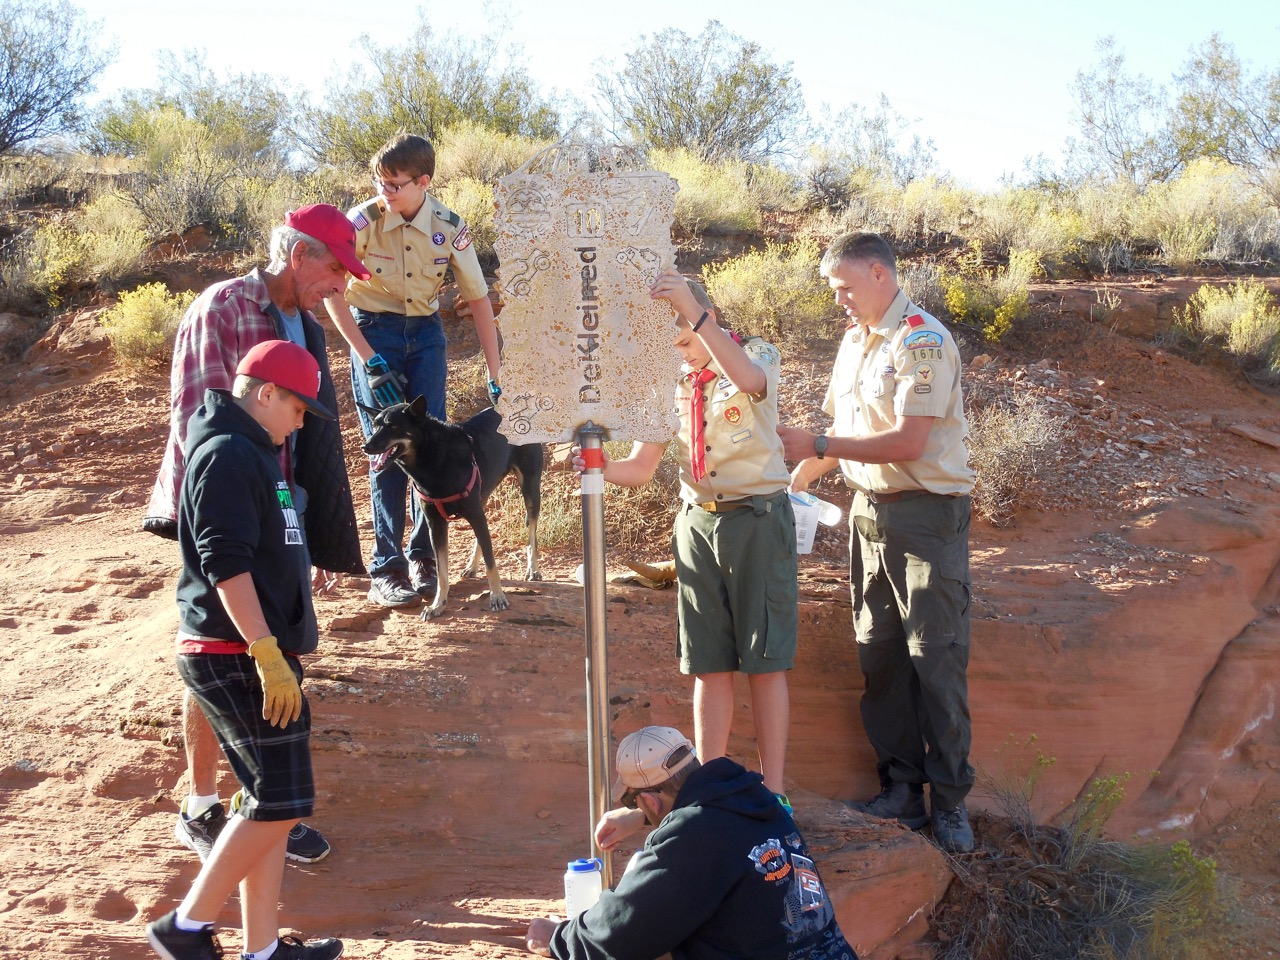 Boy scouts are among the volunteers for a National Public Lands Day project aiming to make Sand Mountain cleaner, safer and easier to navigate, Hurricane, Utah, Sept. 24, 2016 | Photo courtesy of Desert Roads and Trails Society – Desert RATS, St. George News